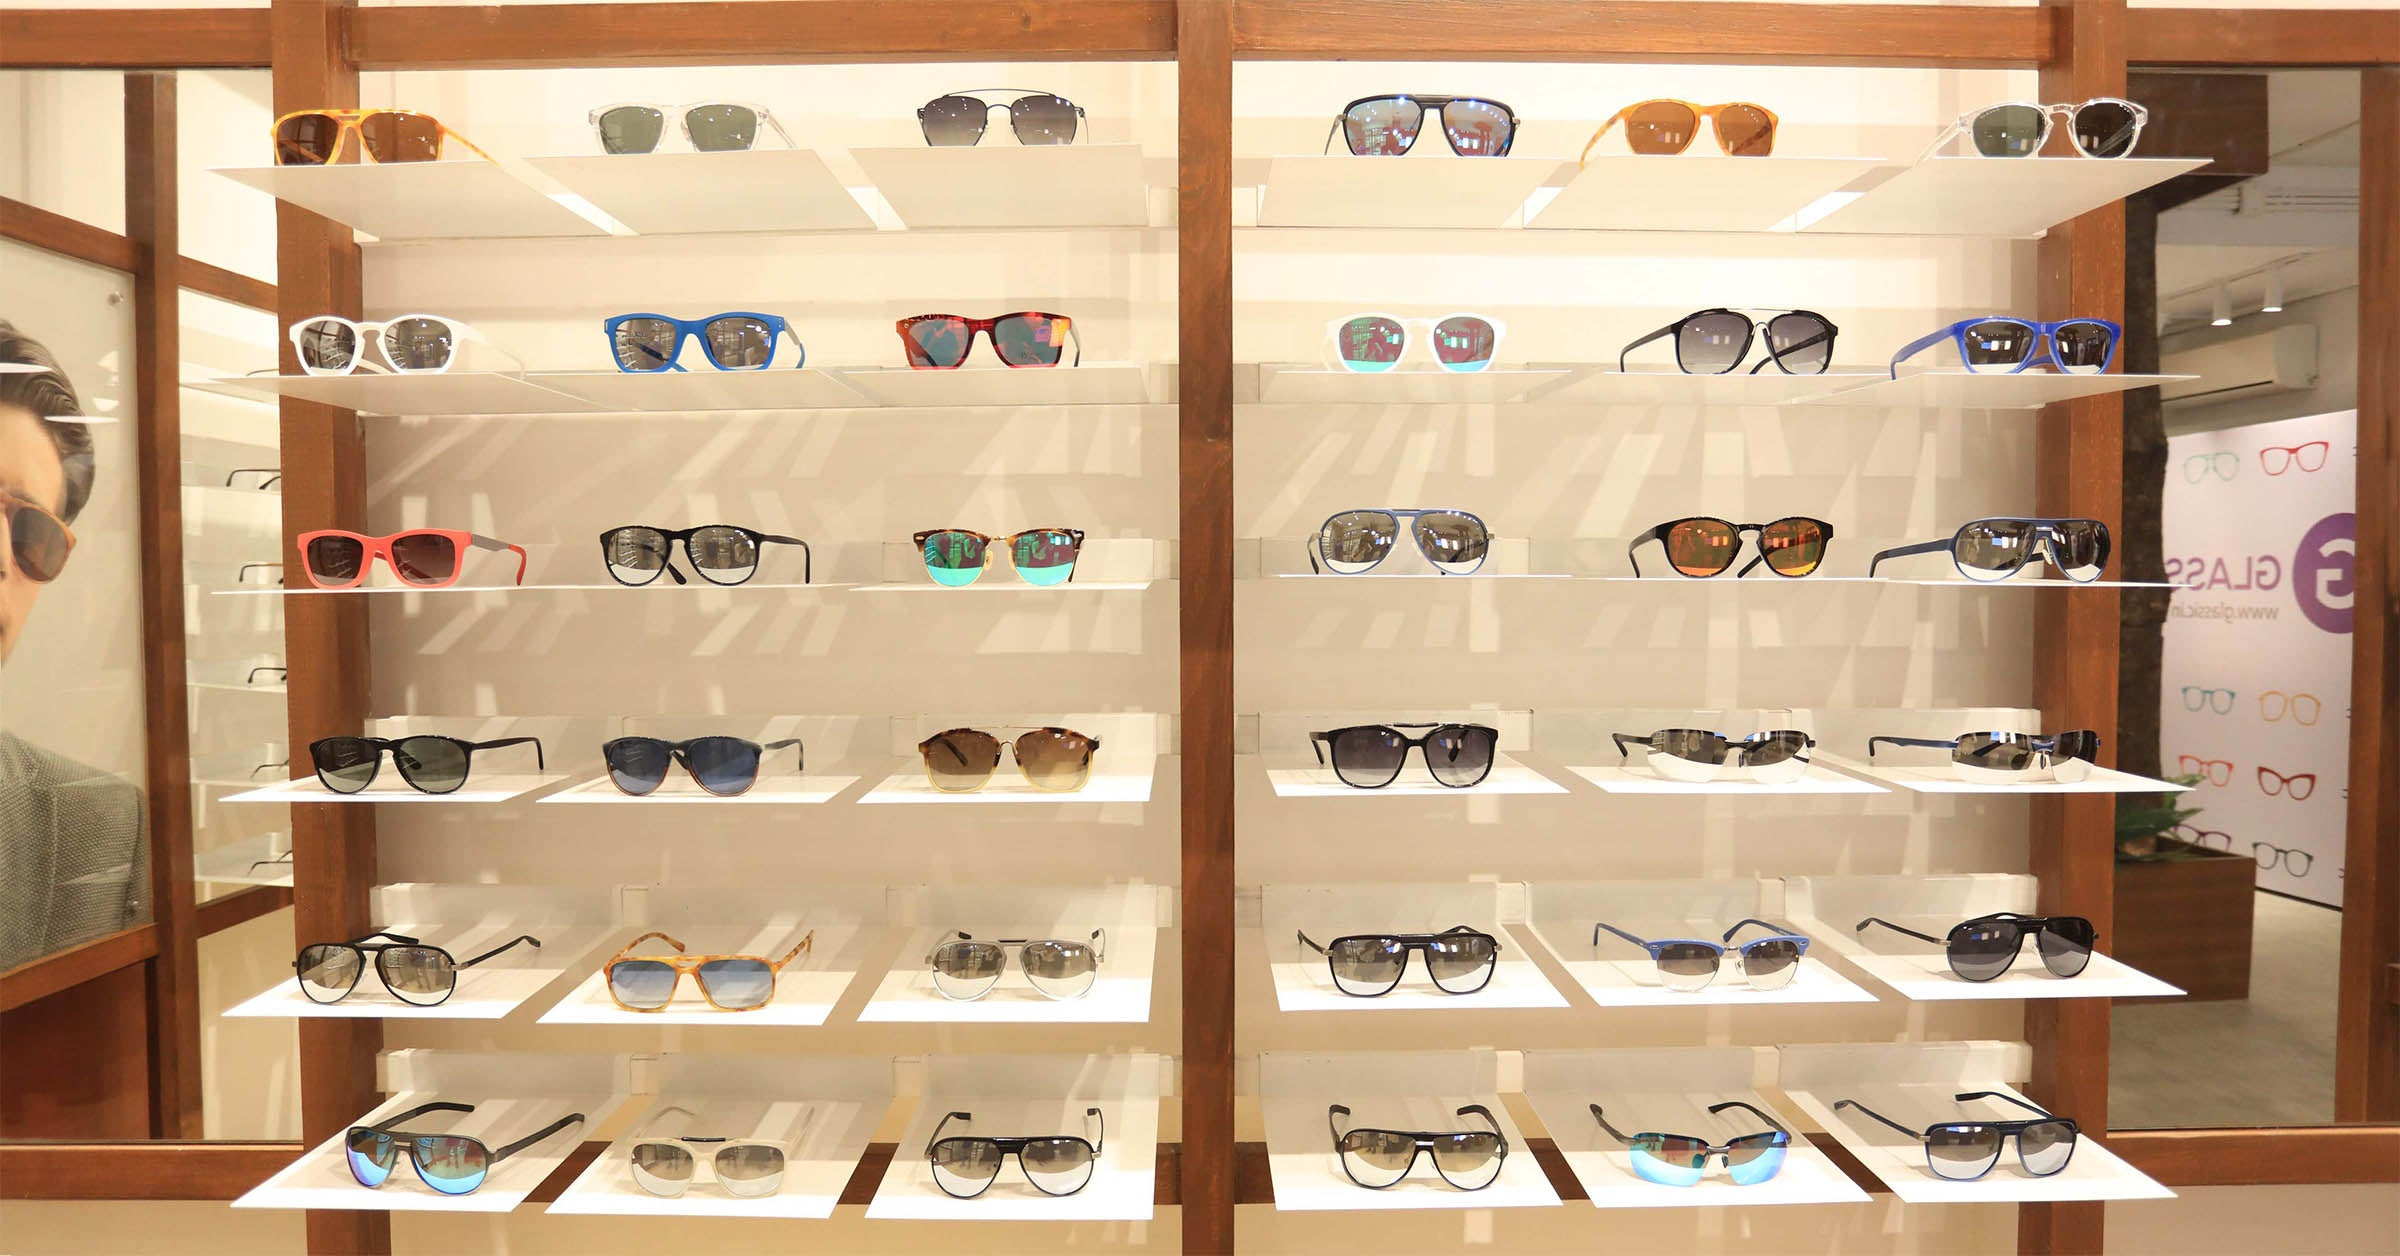 Glassic's Store Launch Was All About Spunk And Substance, Served With A Dash Of Eyewear, Of Course